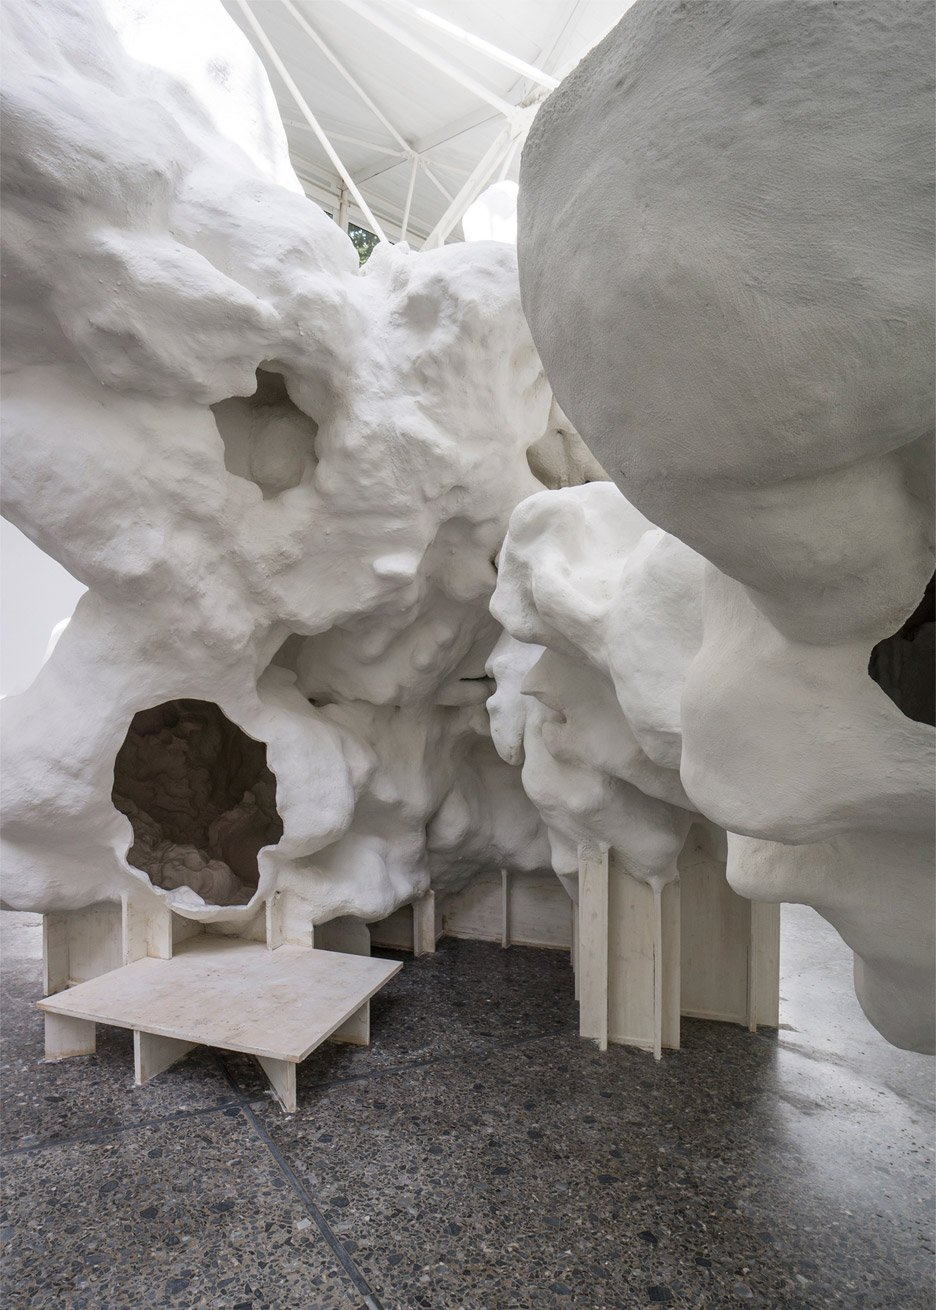 Incidental Space, Swiss Pavilion by Christian Kerez at the Venice Architecture Biennale 2016. Photograph by Oliver Dubuis